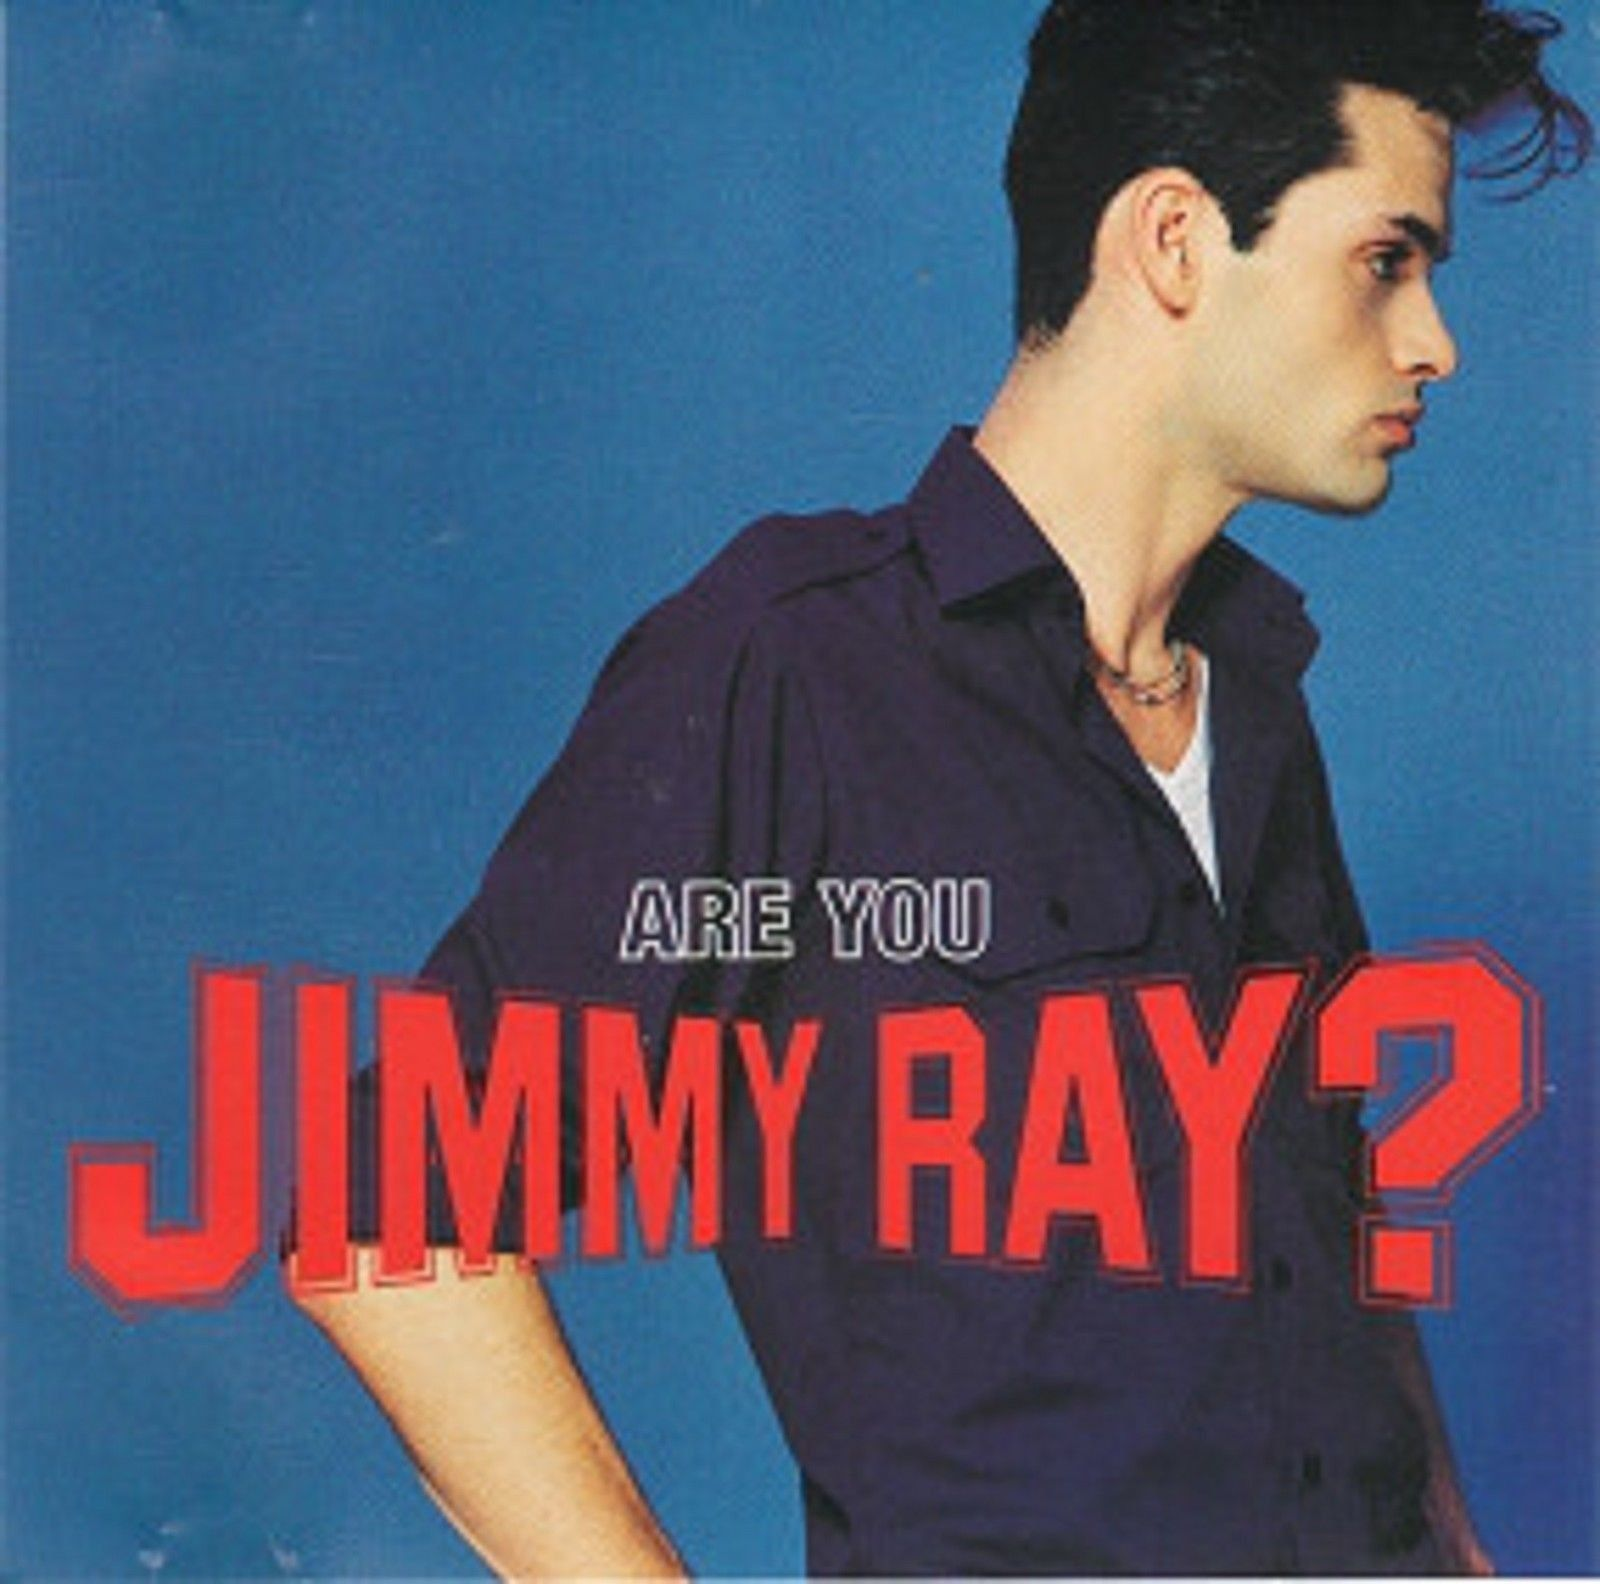 Are You Jimmy Ray? by Jimmy Ray (Epic, 1998).